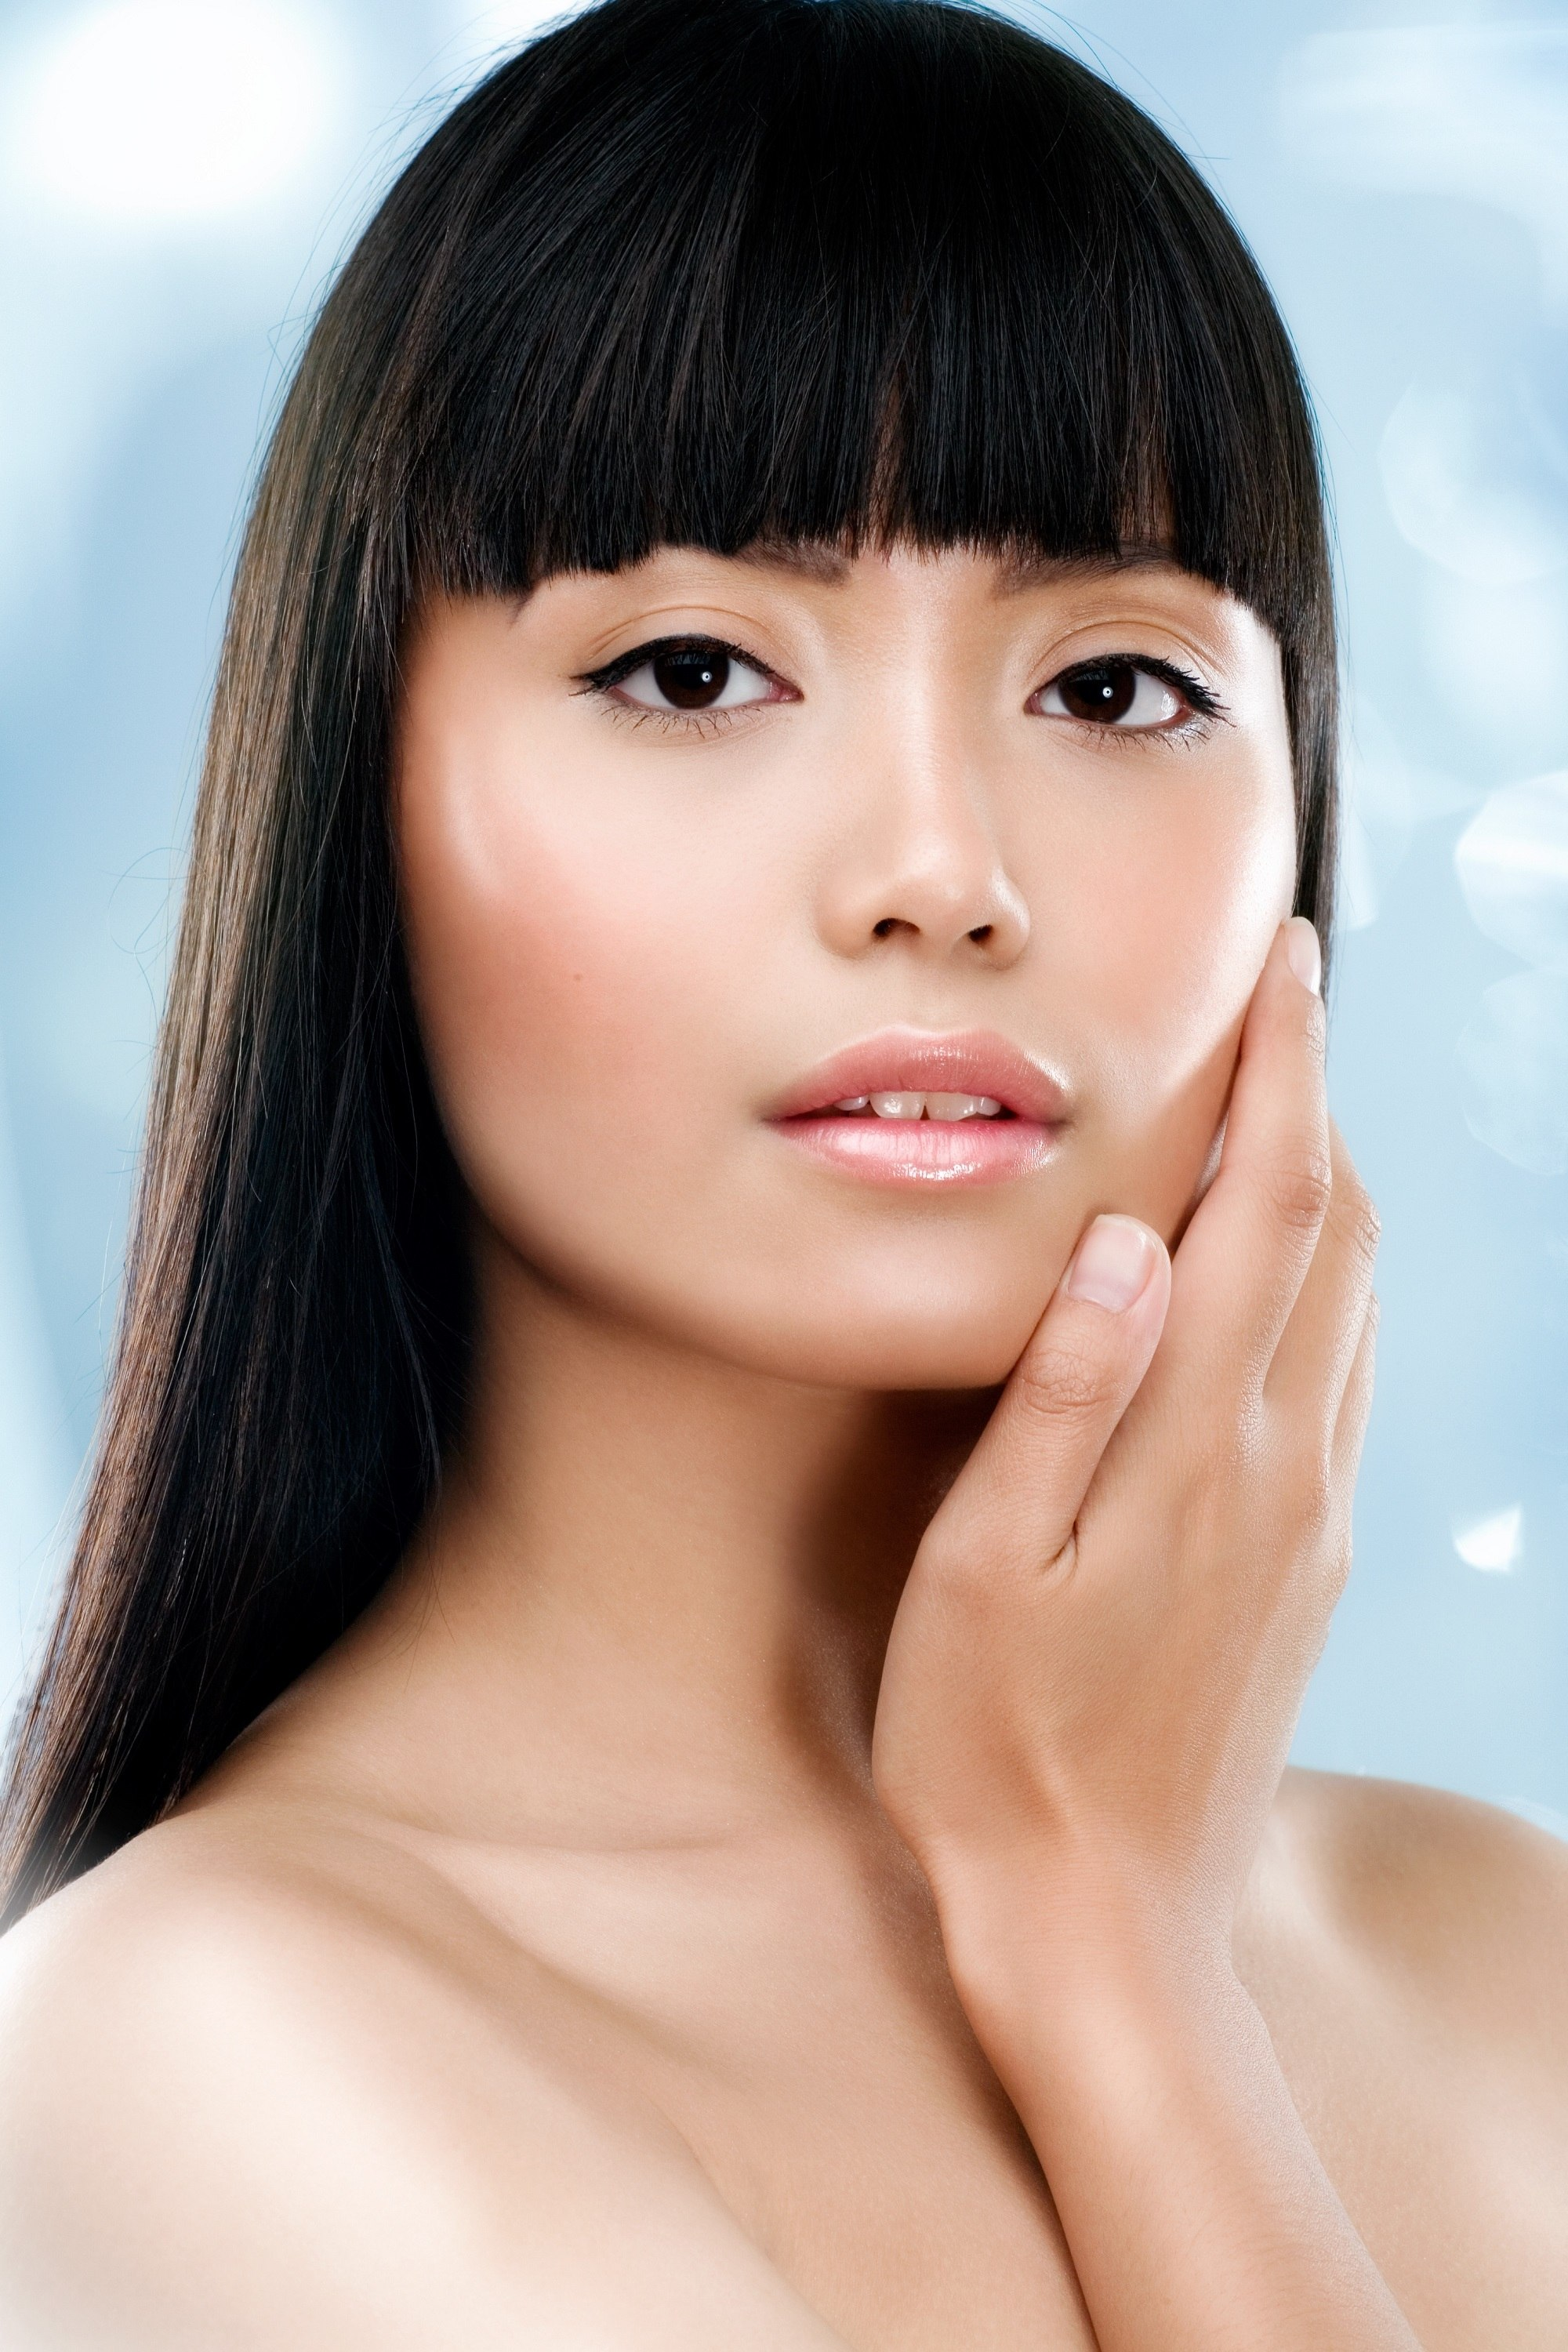 Asian woman with straight bangs and long straight hair